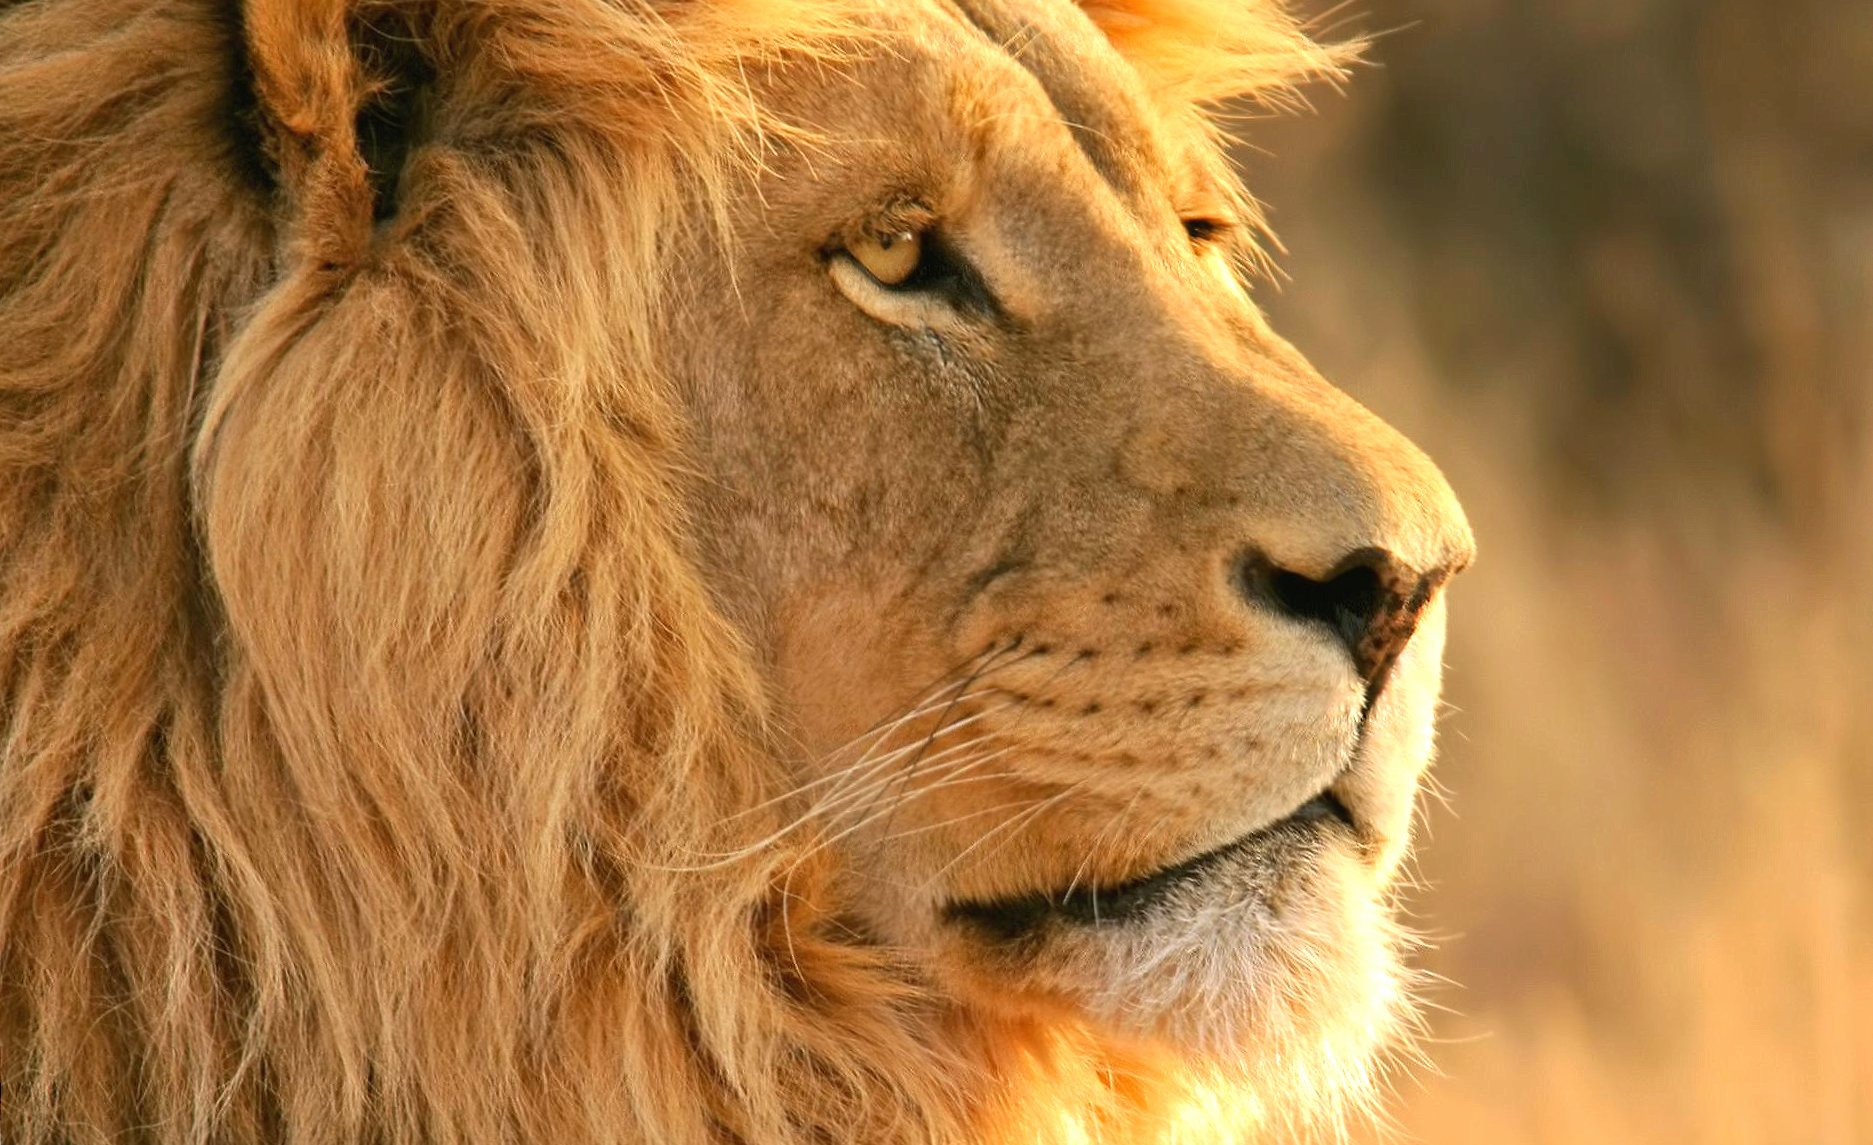 Head lion wallpapers HD quality